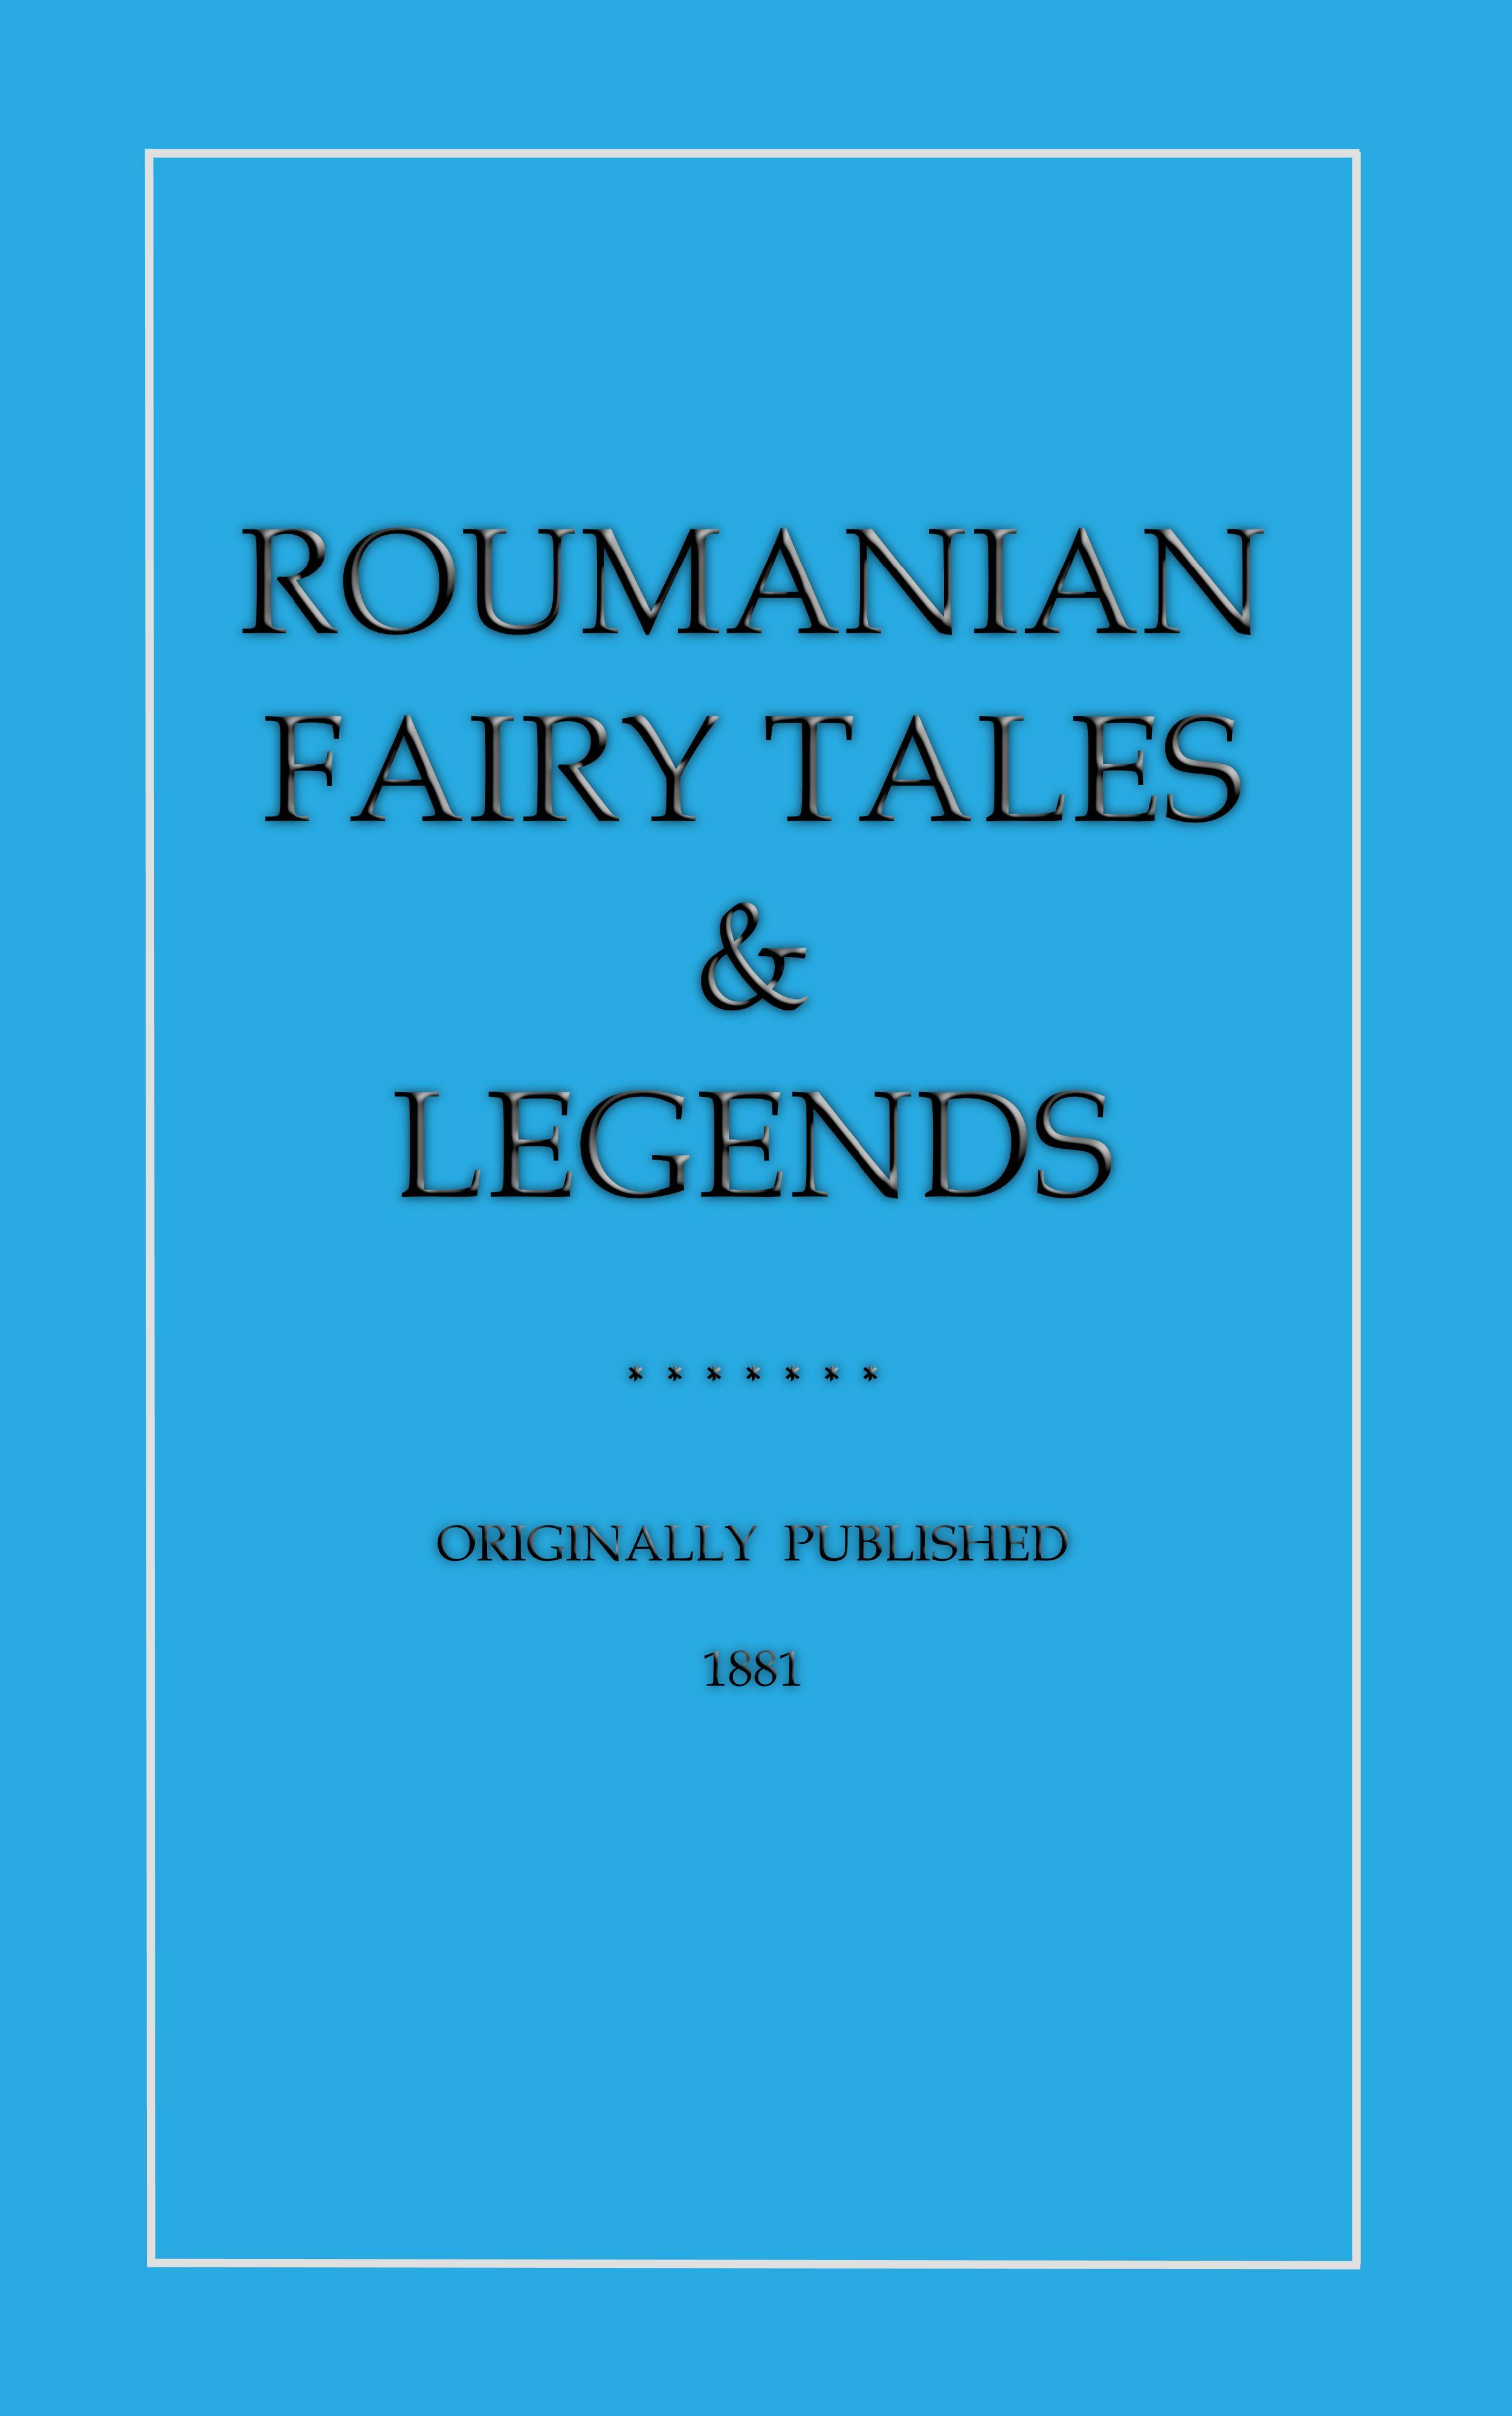 Roumanian Fairytales and Legends